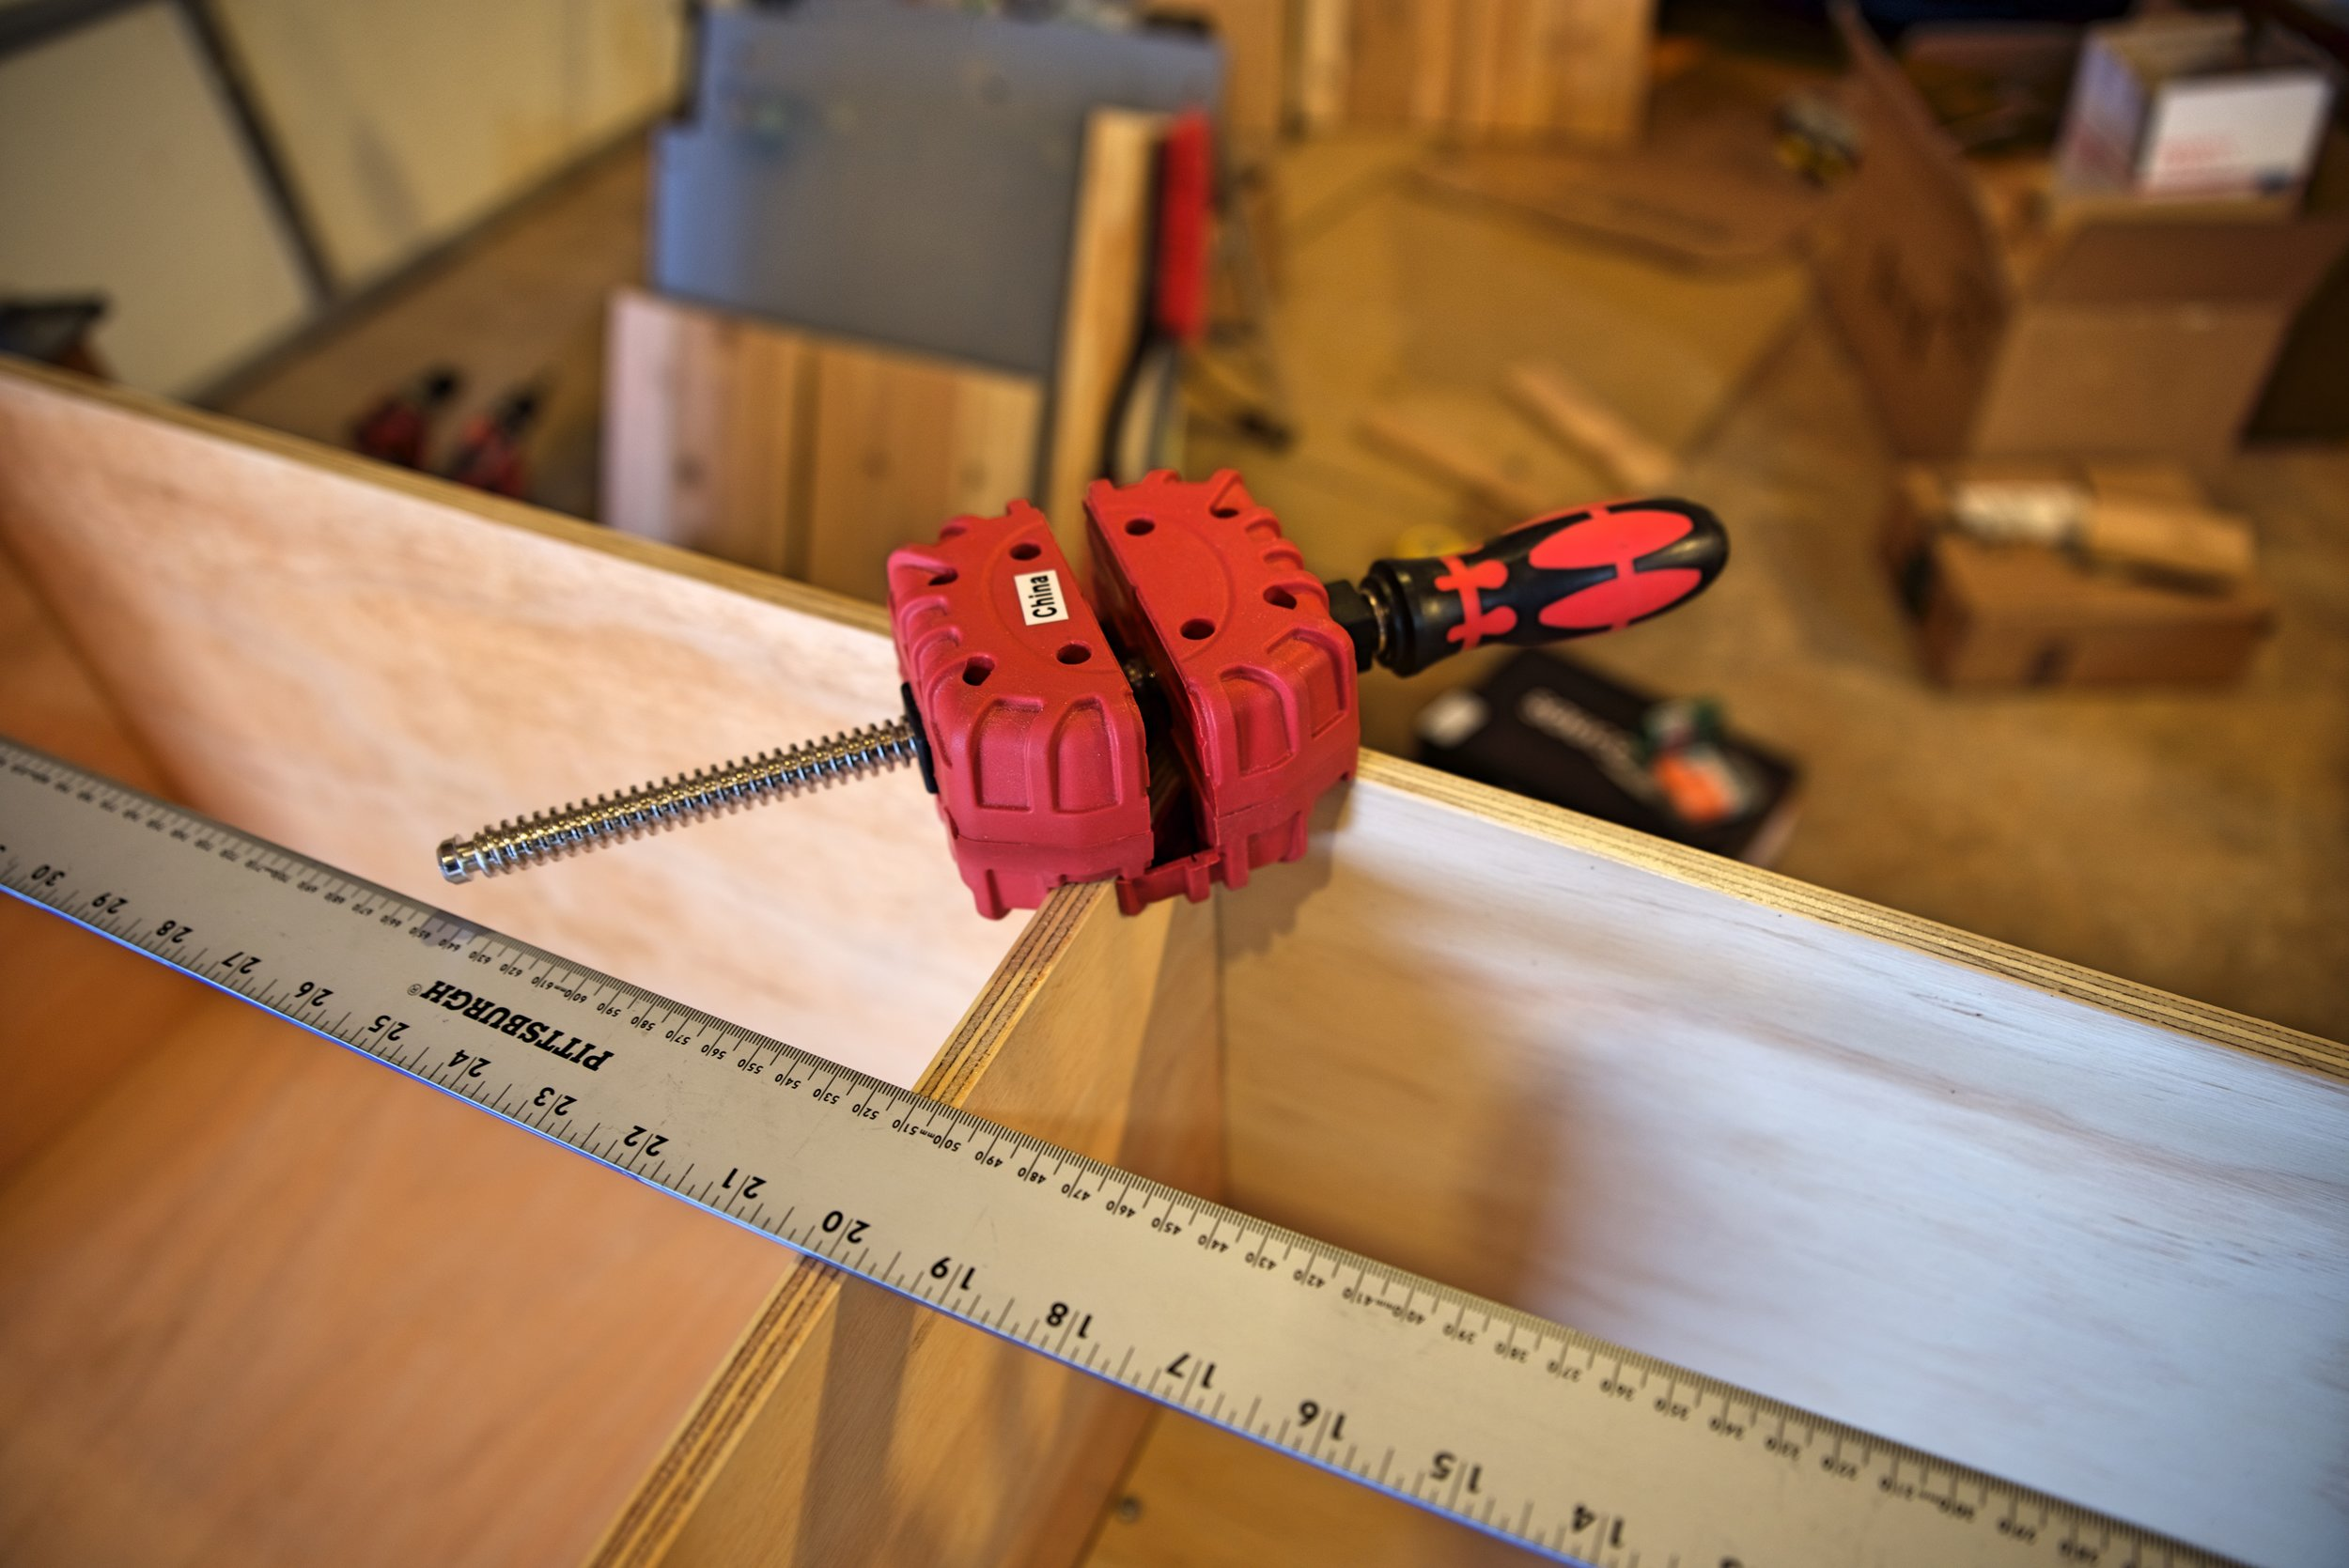 Corner clamps helped us so much when joining 90-degree angles for our cabinetry.